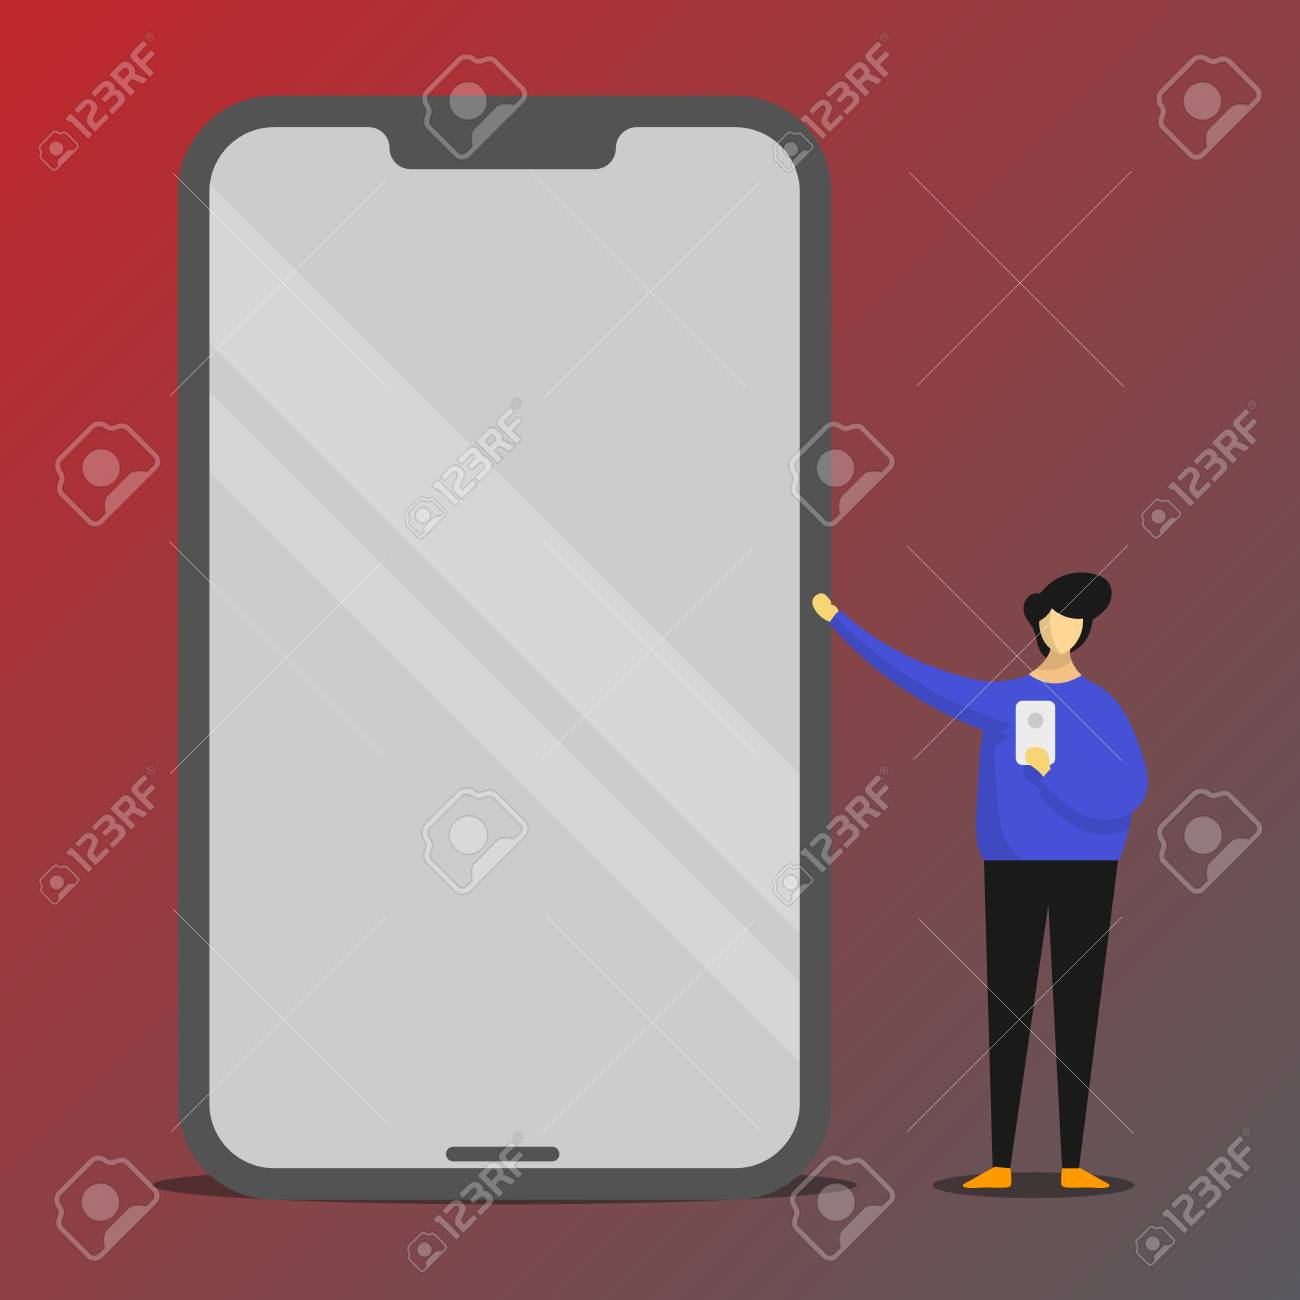 Man Presenting Huge Blank Screen Smartphone While Holding Another